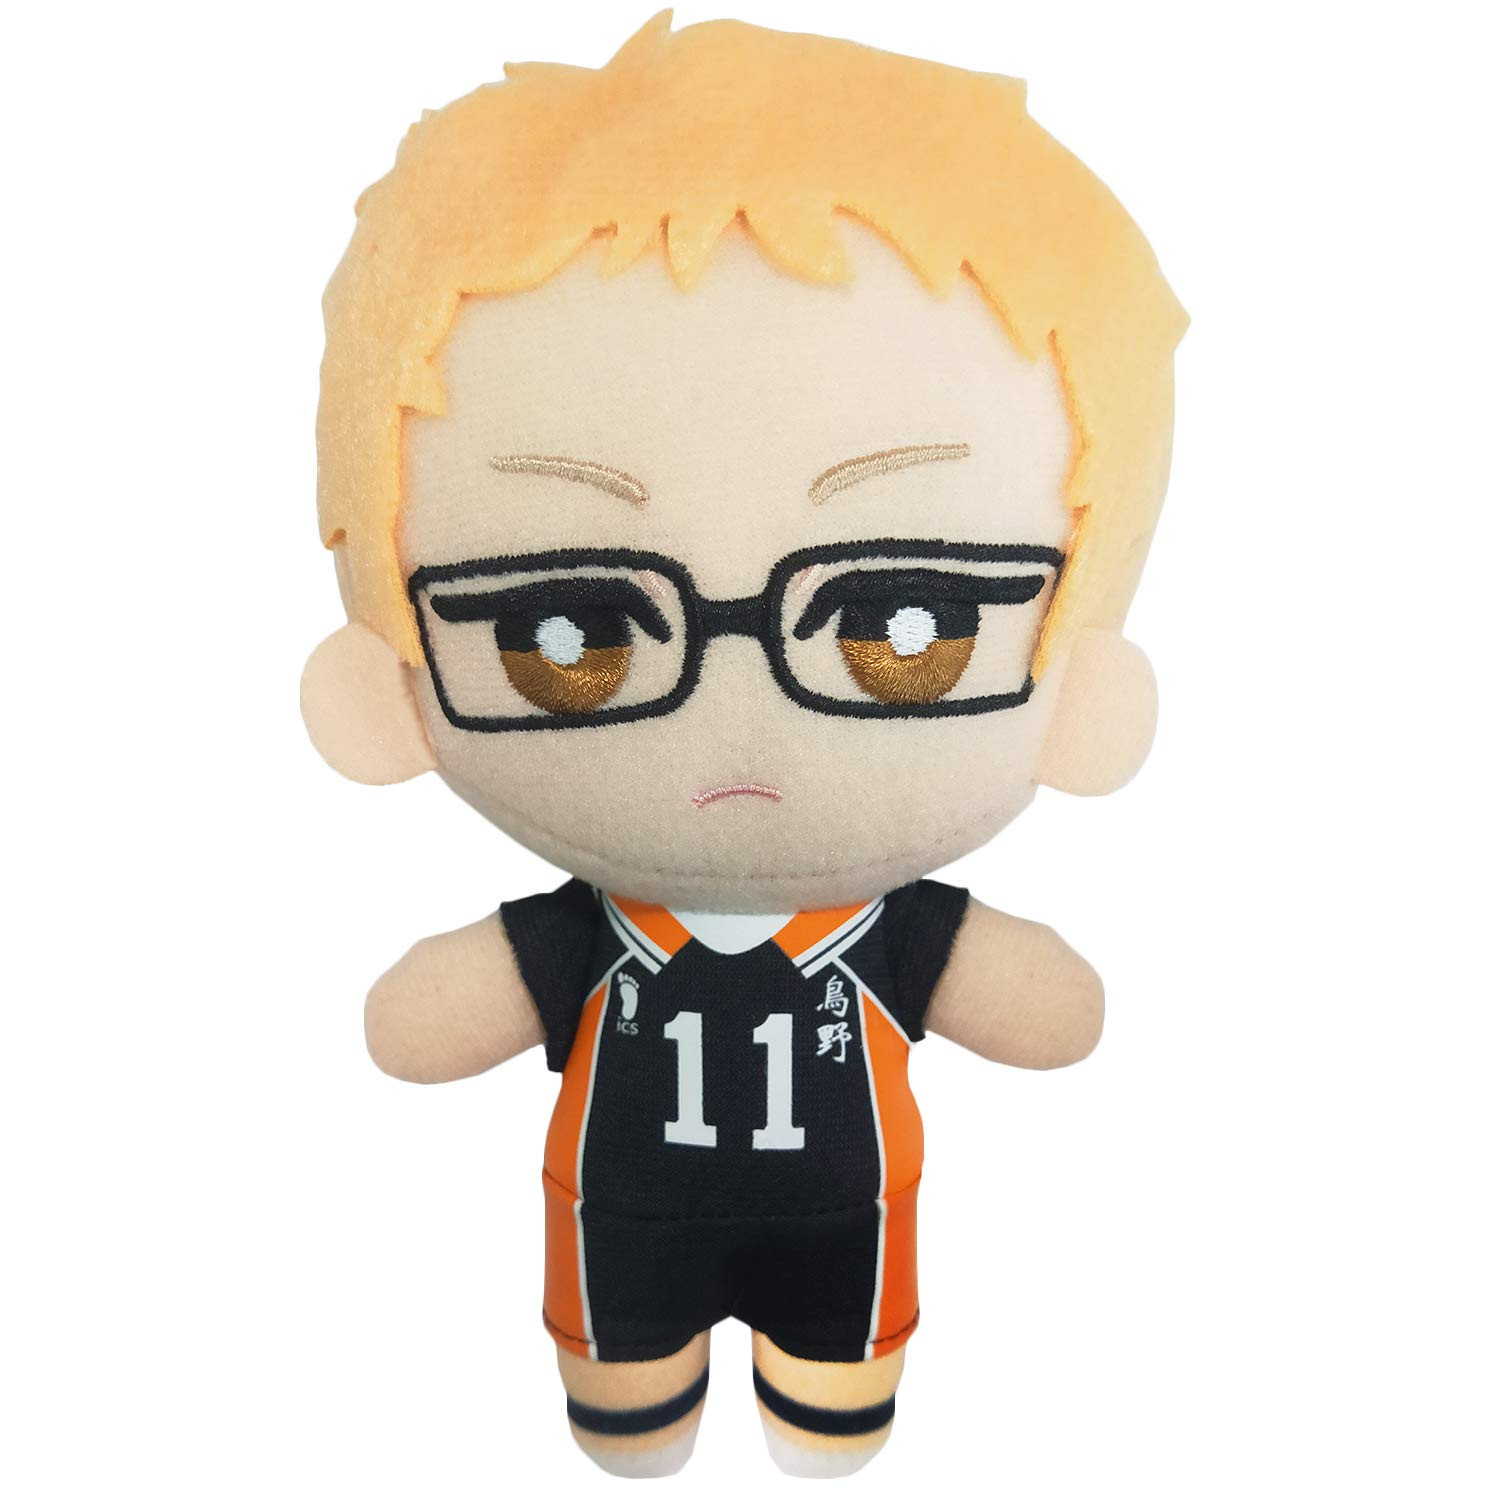 Yulefly Kei Tsukishima Plush Toy Merch Plushies Dolls Haikyu!! S2 Stuffed Toys for Anime Manga Fans Plushie 6.69''